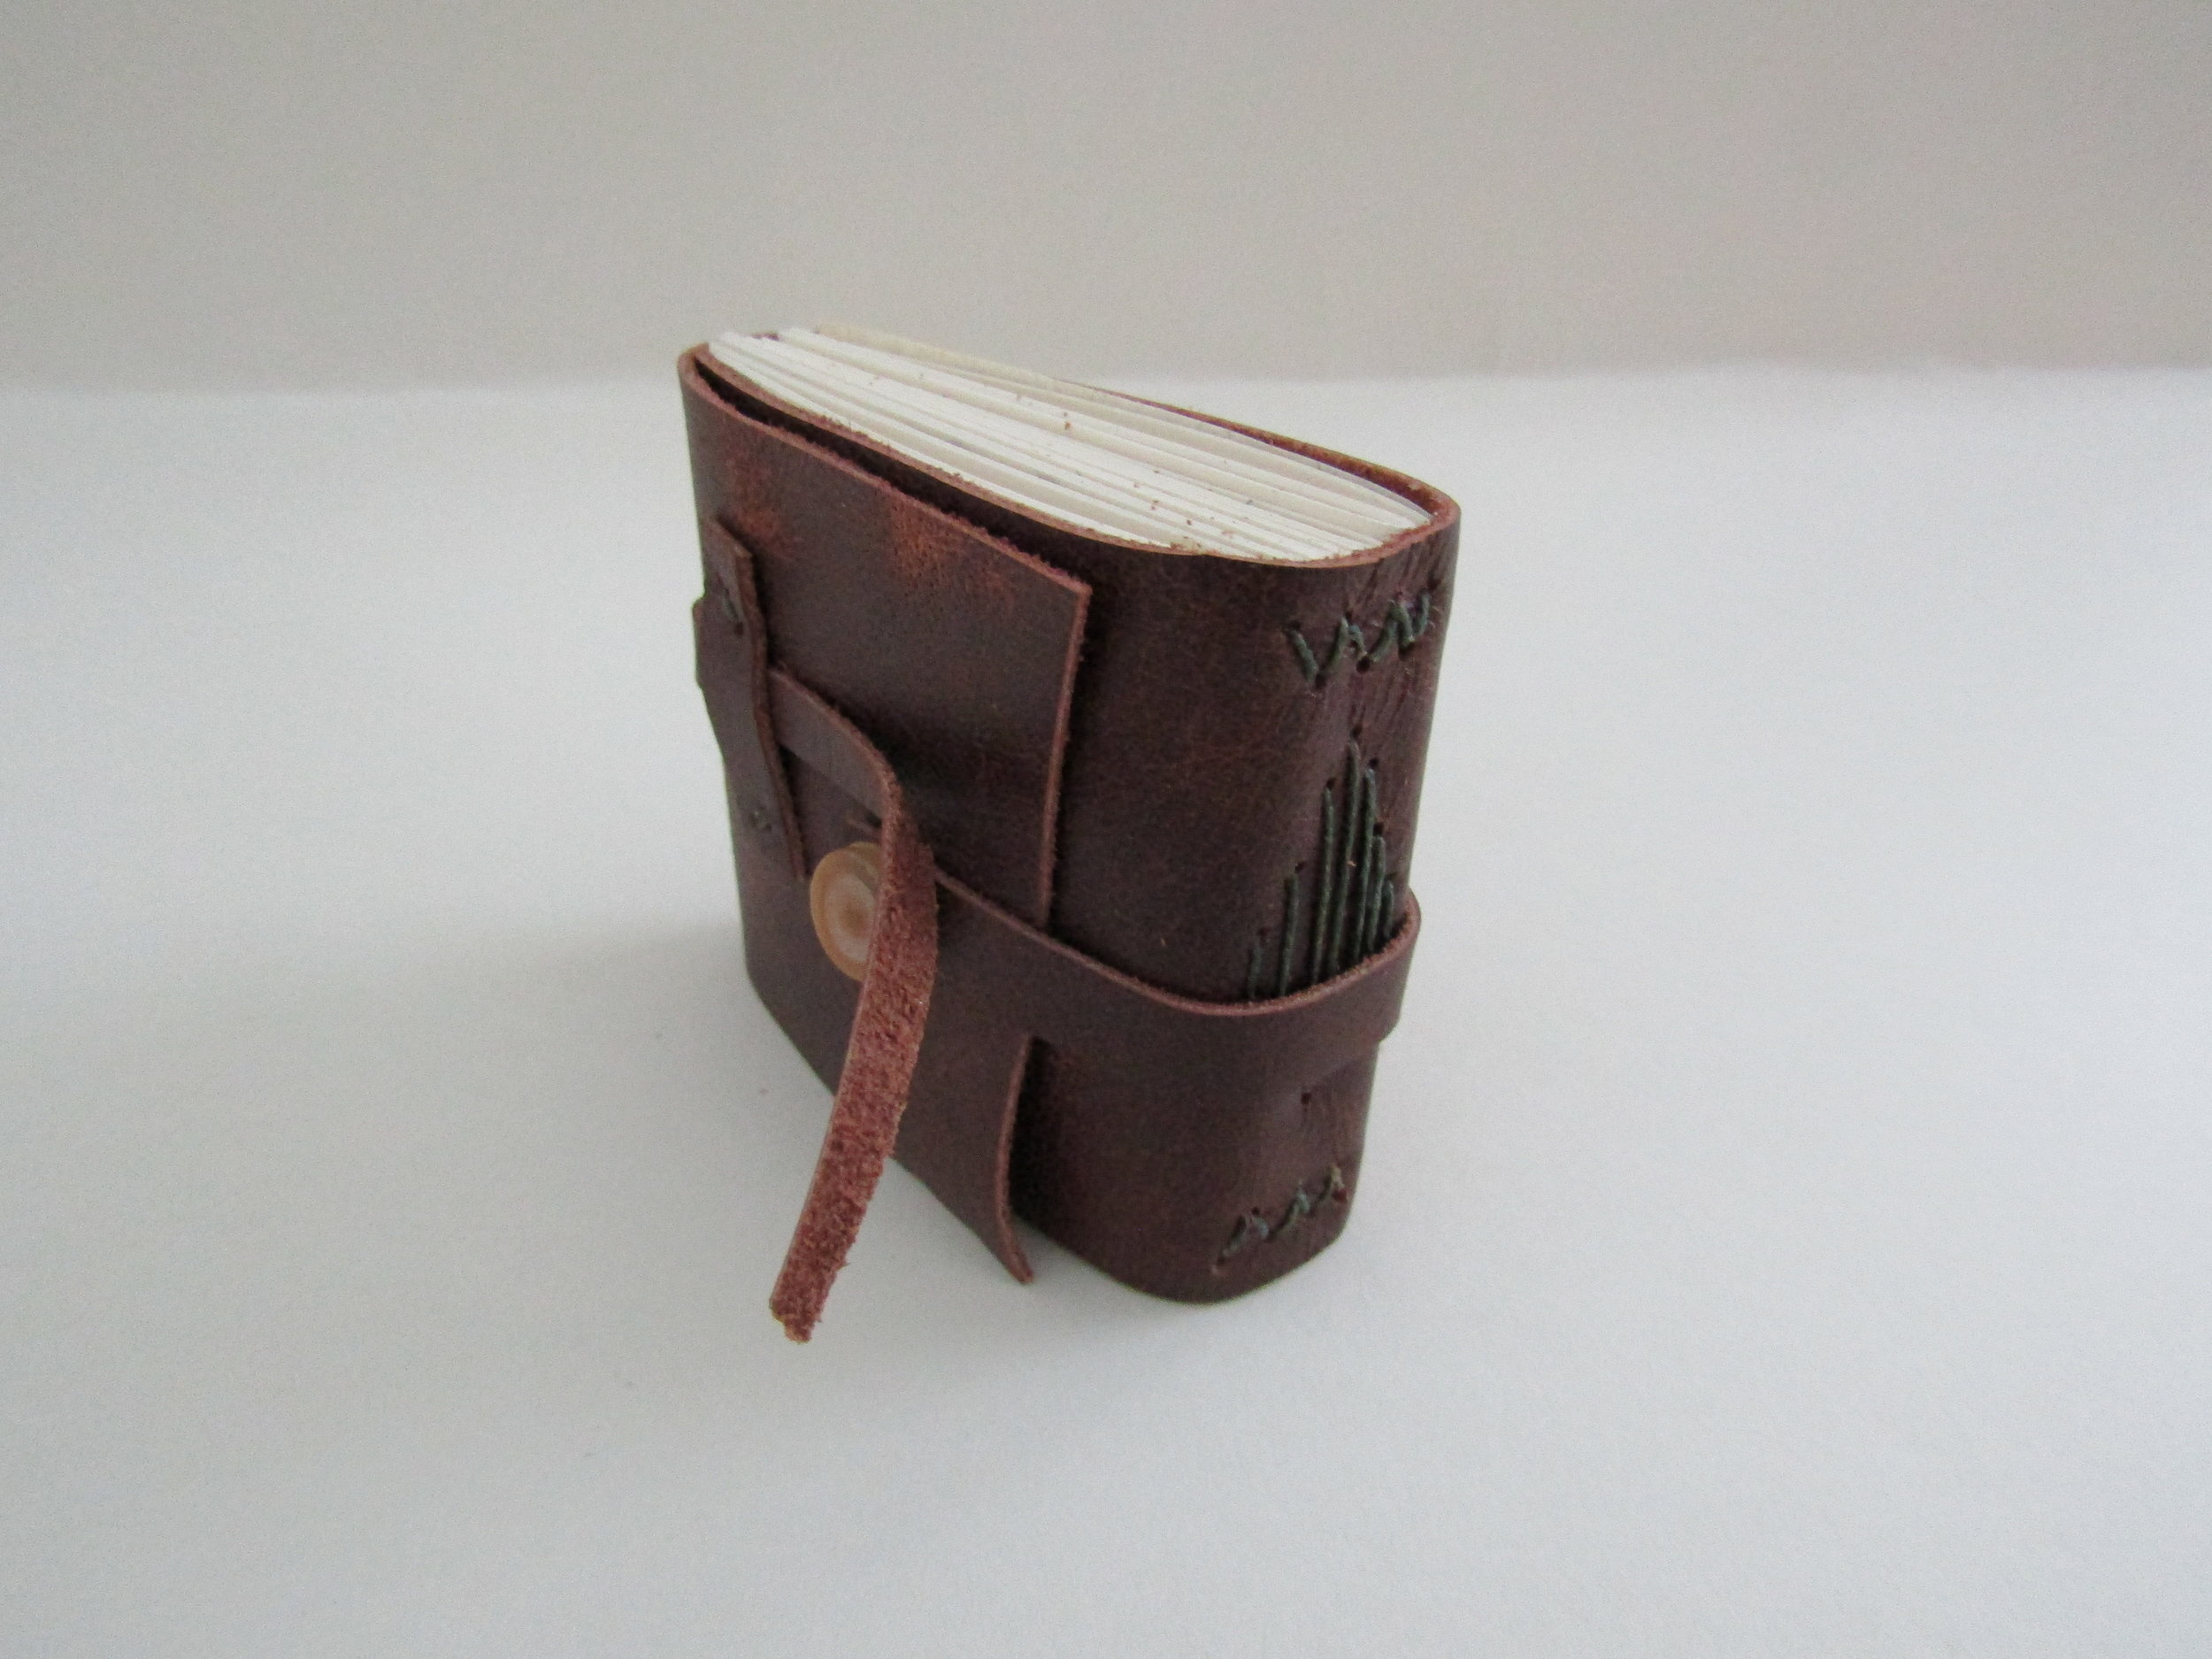 Completed brown leather journal.